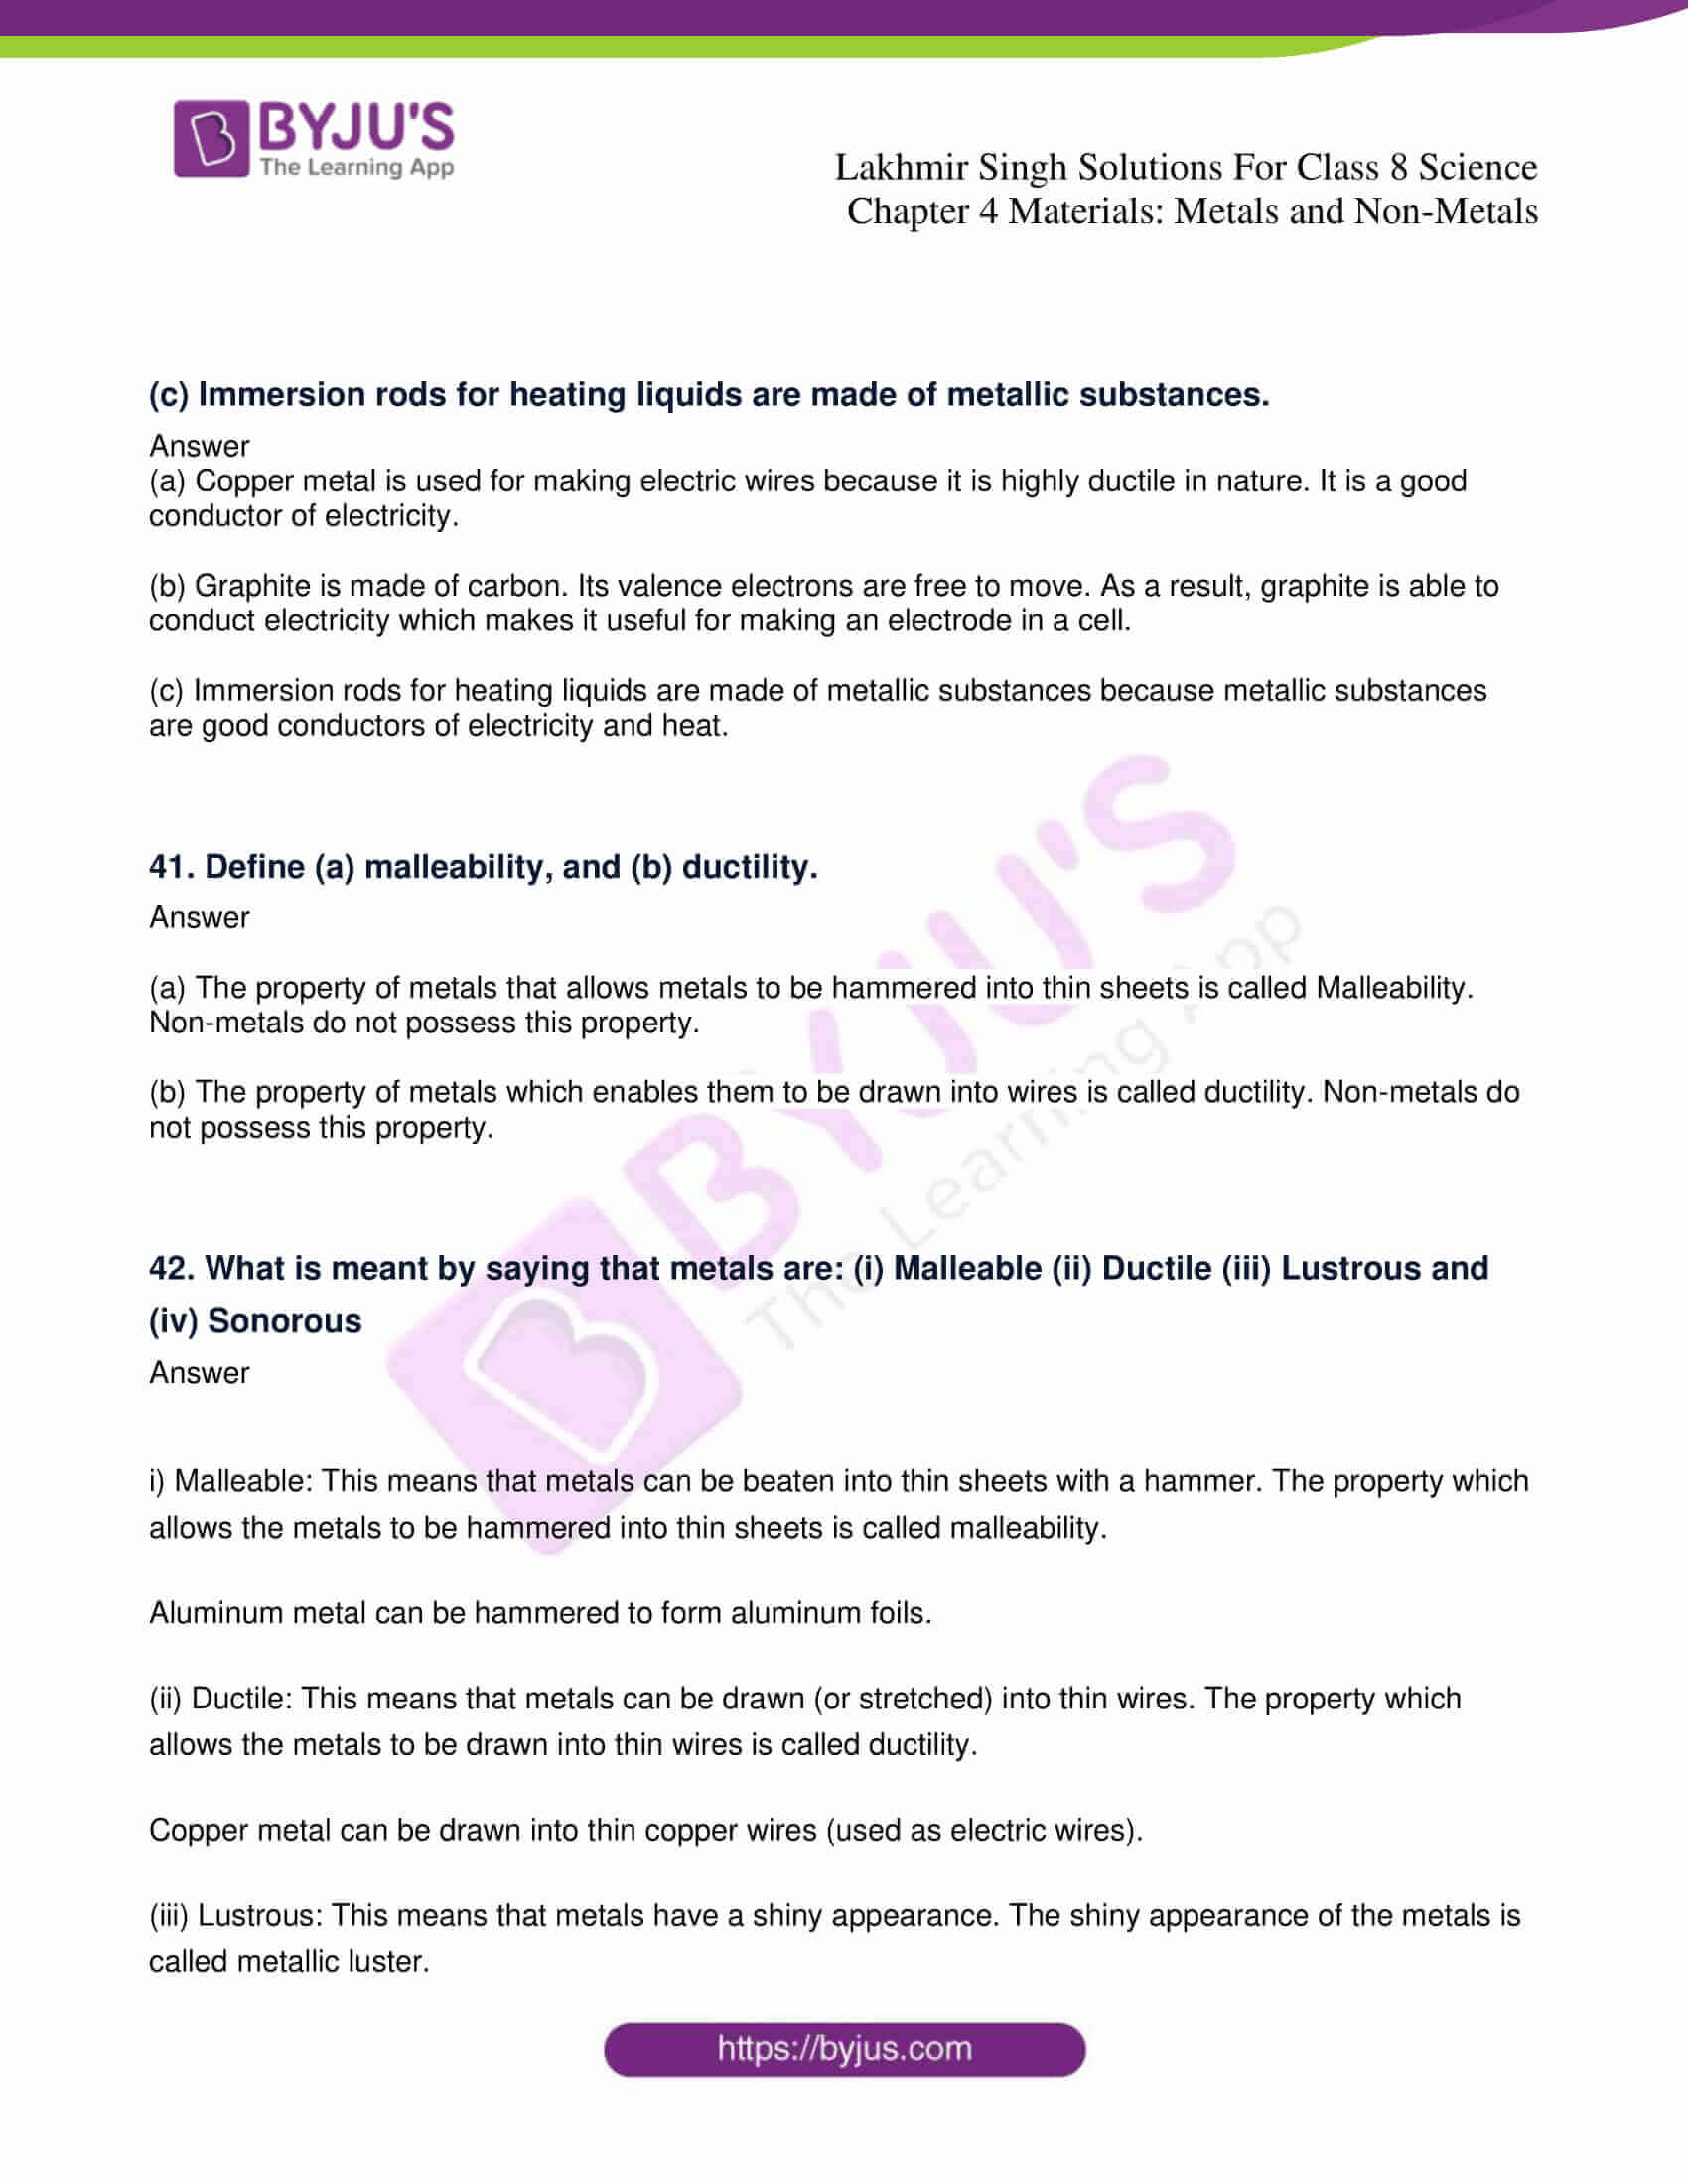 lakhmir singh solutions for class 8 science chapter 4 09